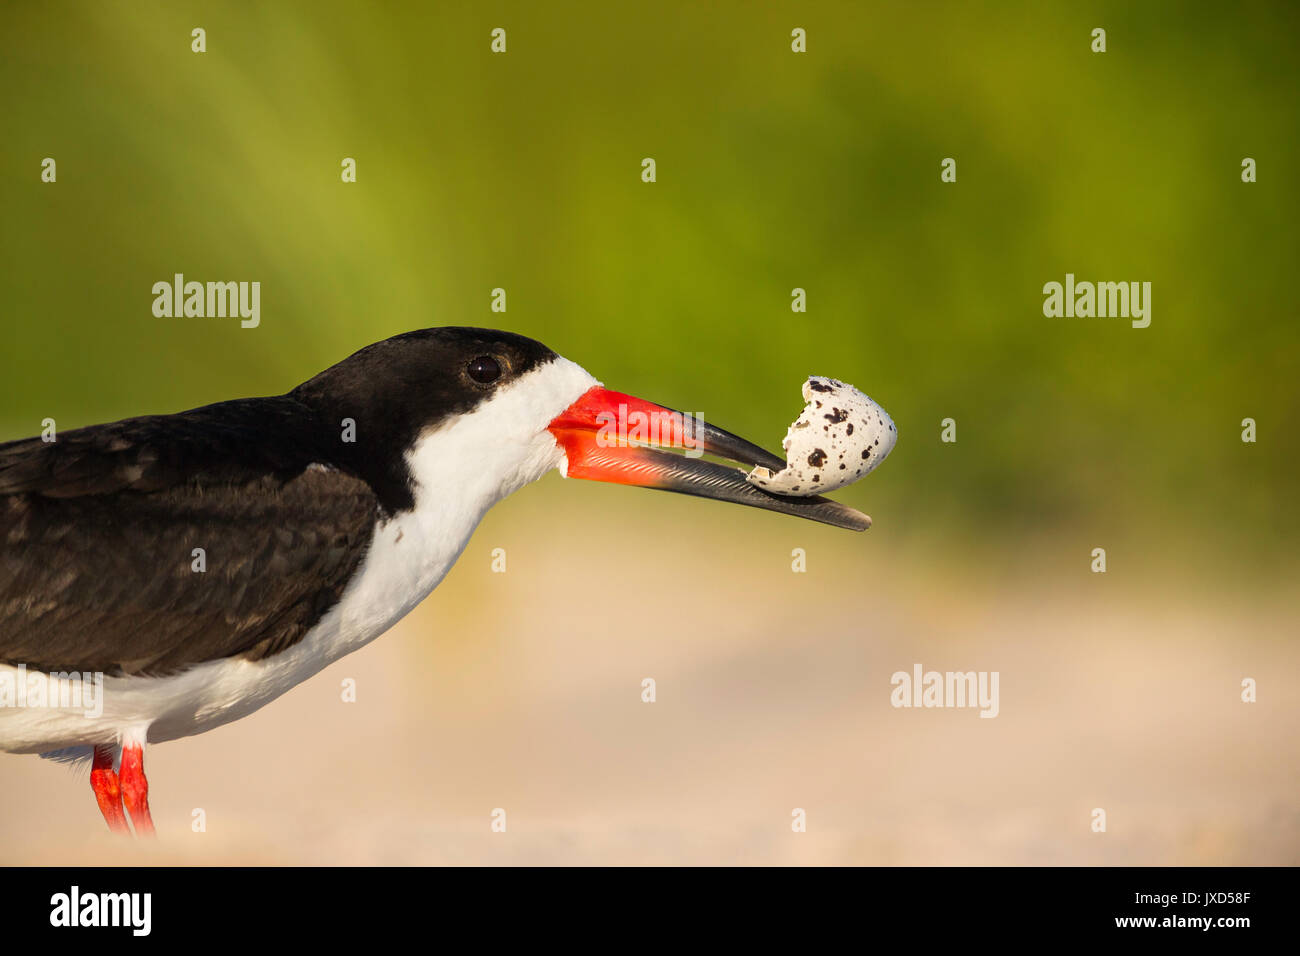 Close up of an adult Black Skimmer discarding an eggshell of just hatched chick to steer away predators from its nest. - Stock Image